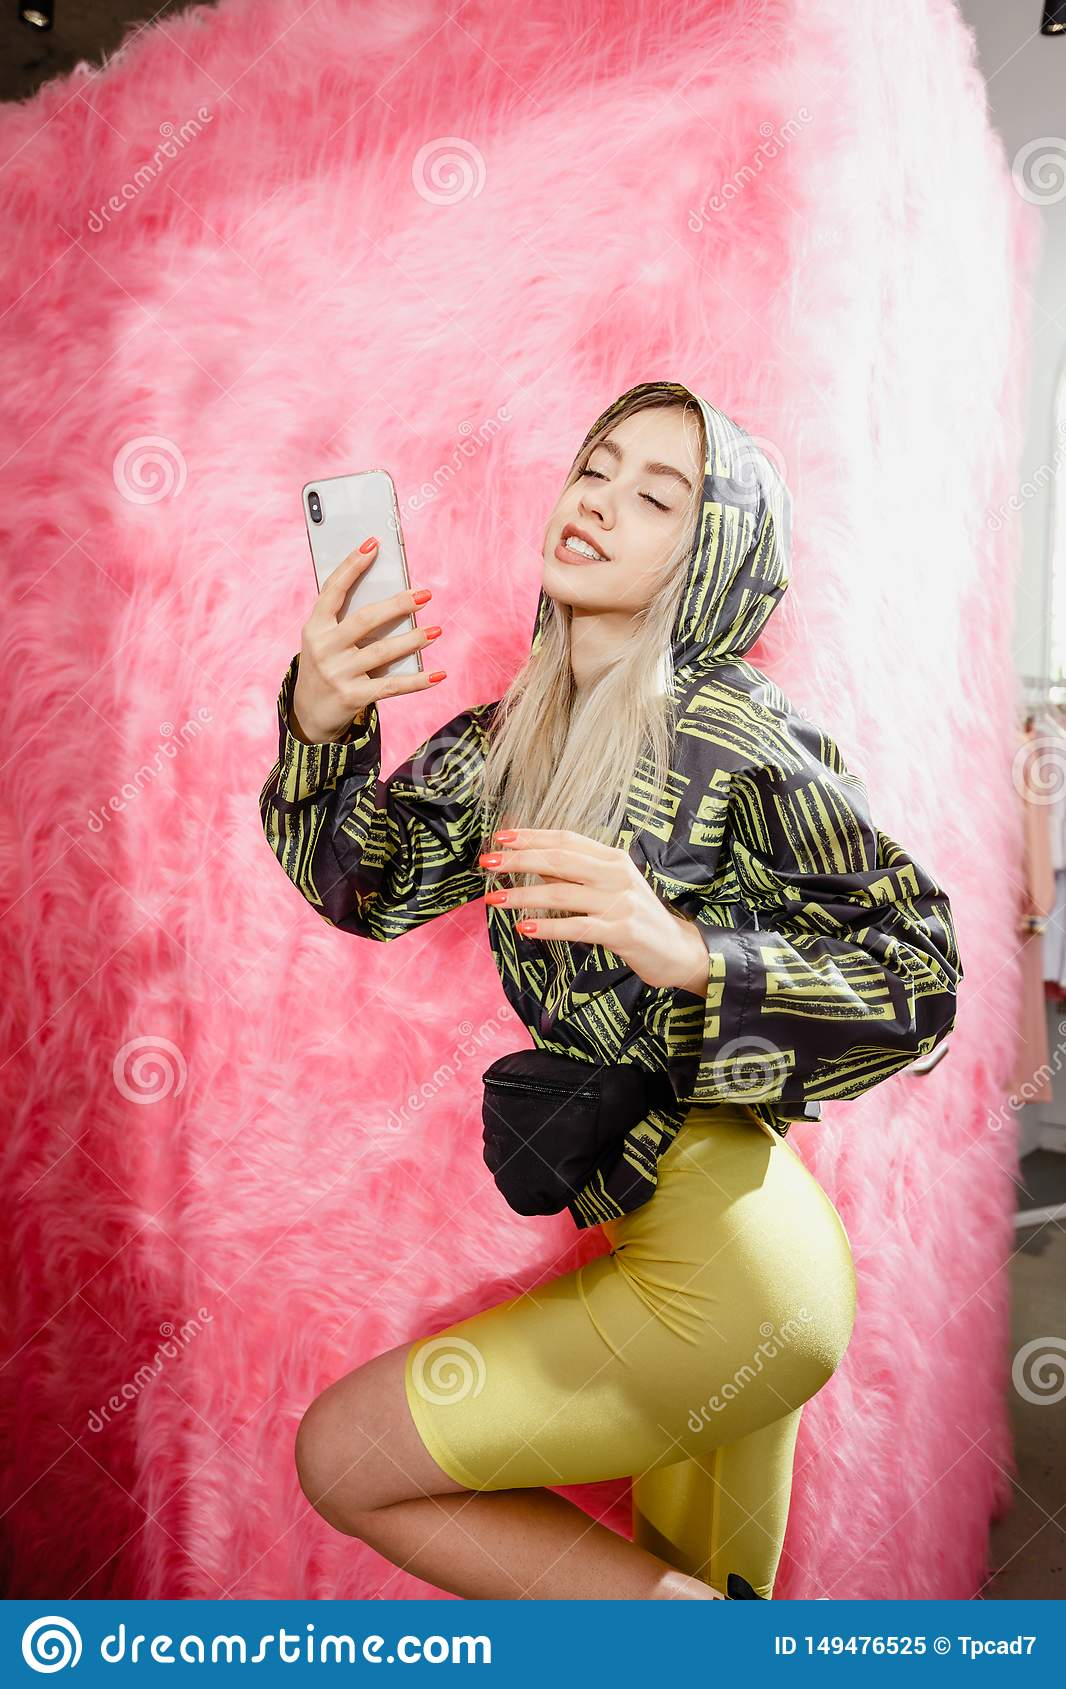 Fashion young girl blogger dressed in a stylish black and yellow jacket and yellow shorts takes a selfie on the